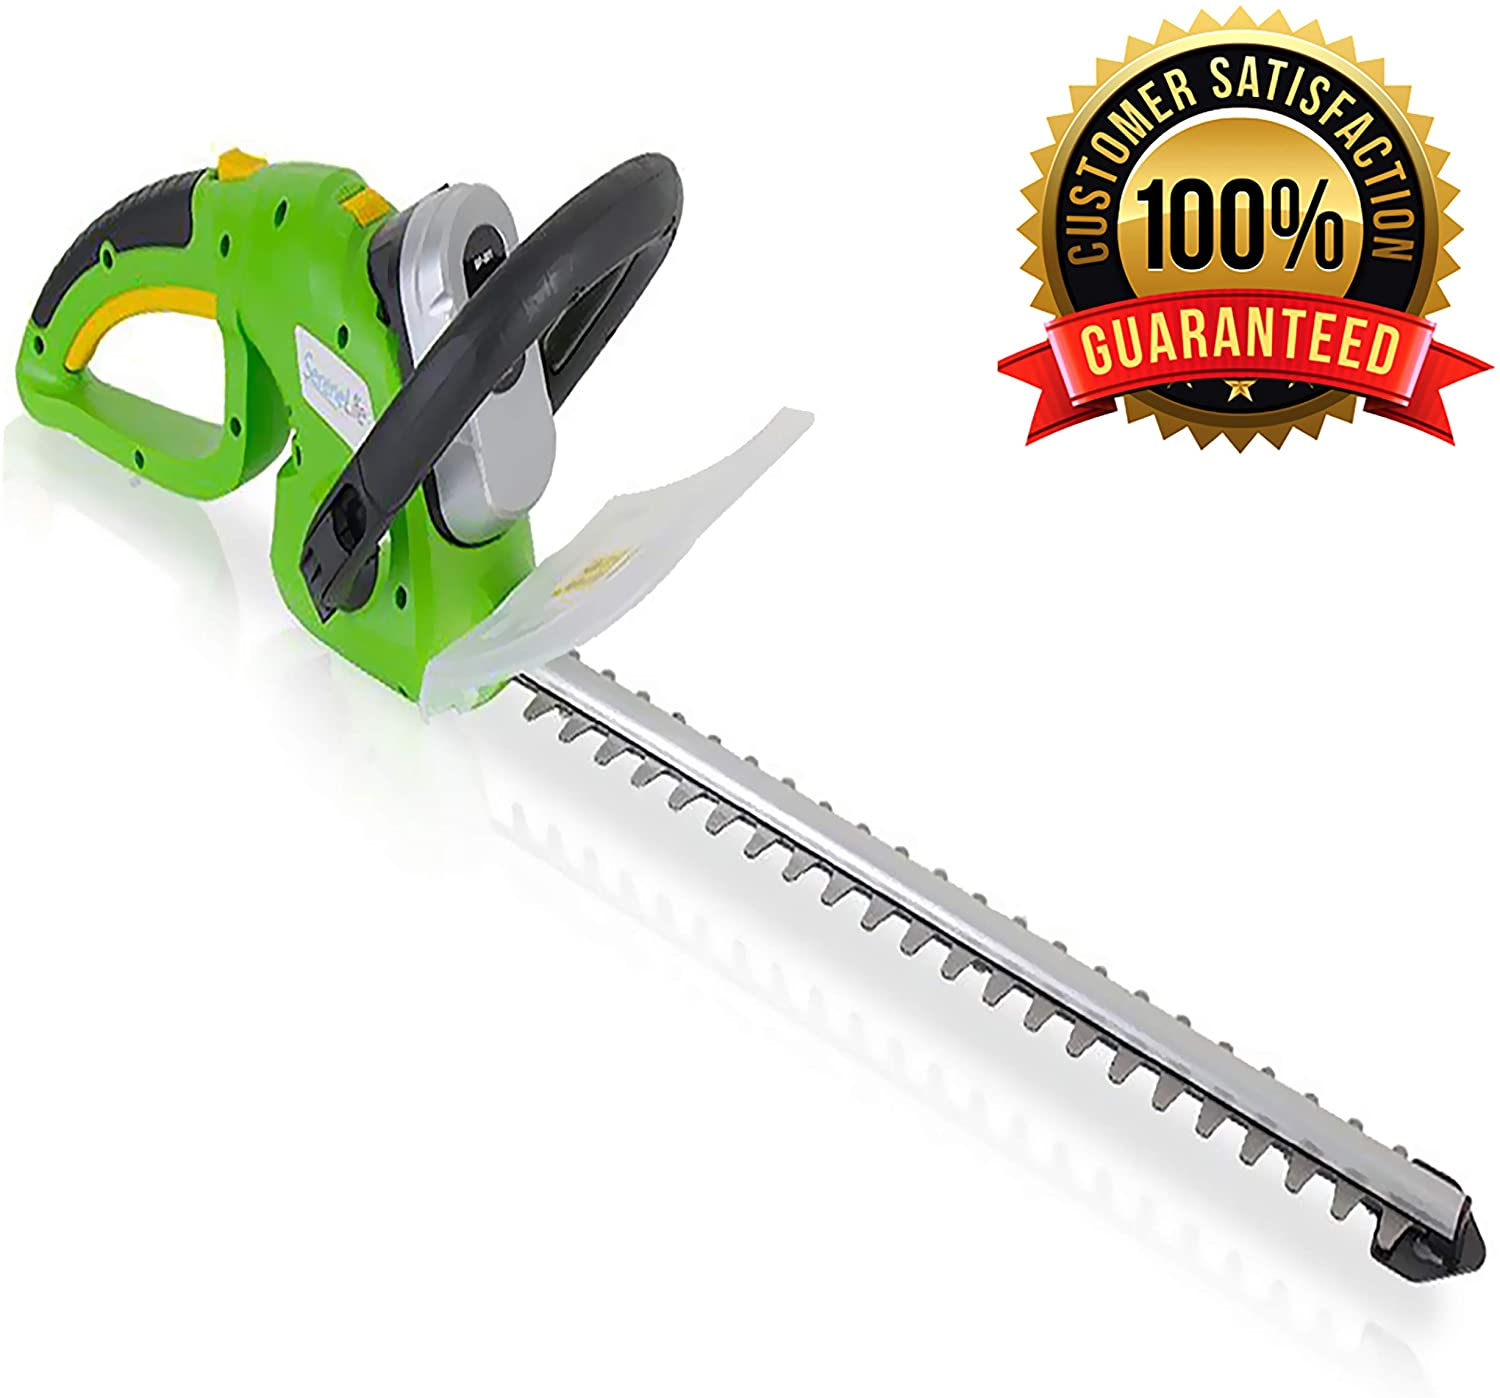 SERENELIFE RELAX Cordless Hedge Trimmer